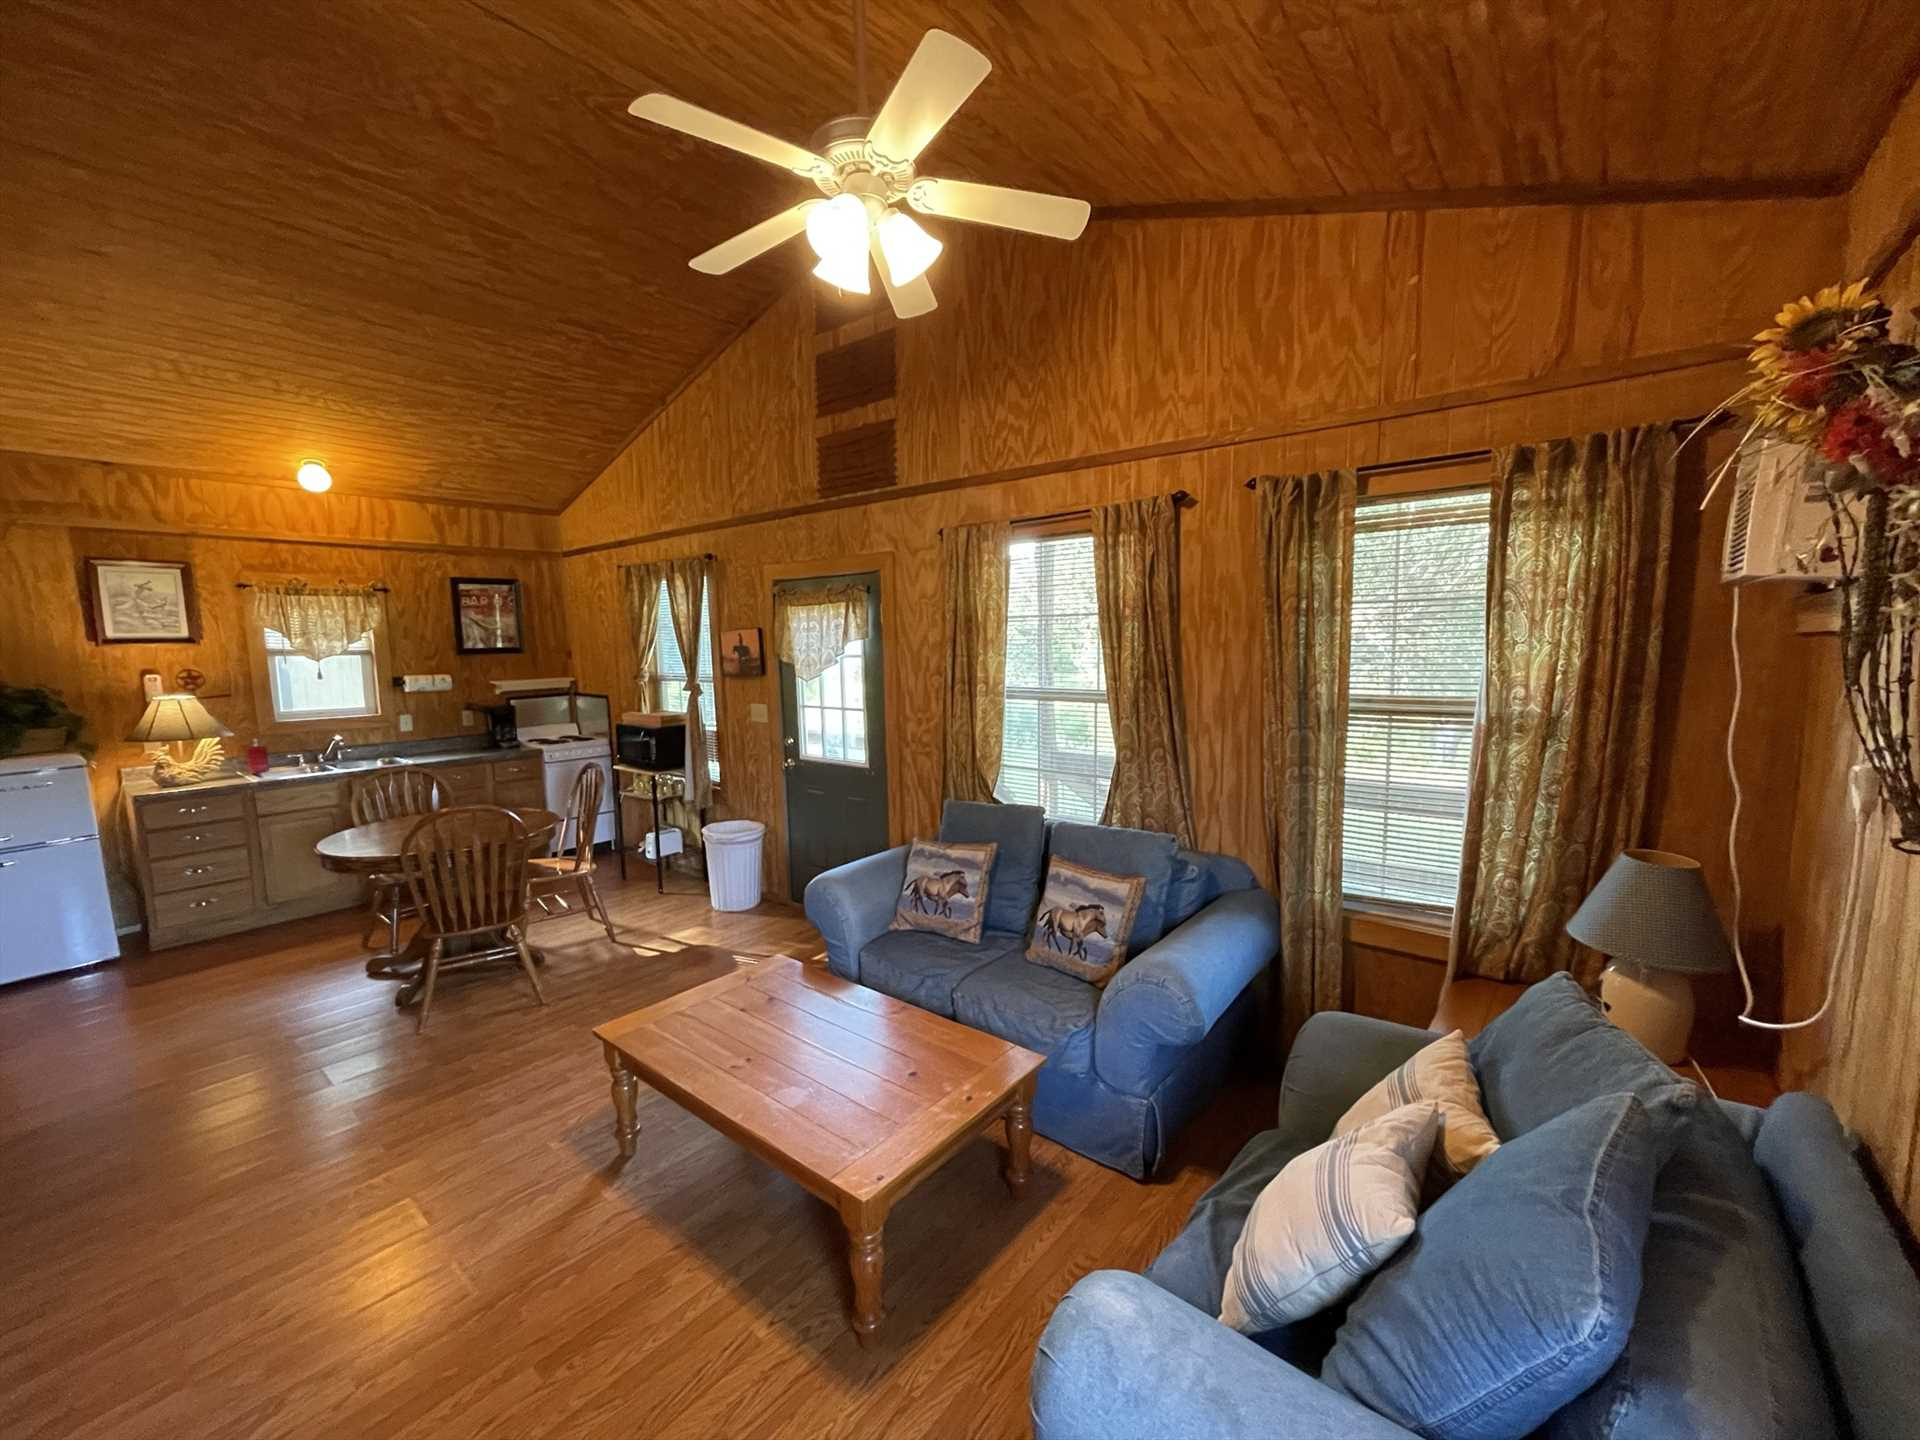 Plenty of leg-stretchin' space greets your folks at the Lone Star Cabin, including a full kitchen, dining table, and warm and welcoming living area furniture!